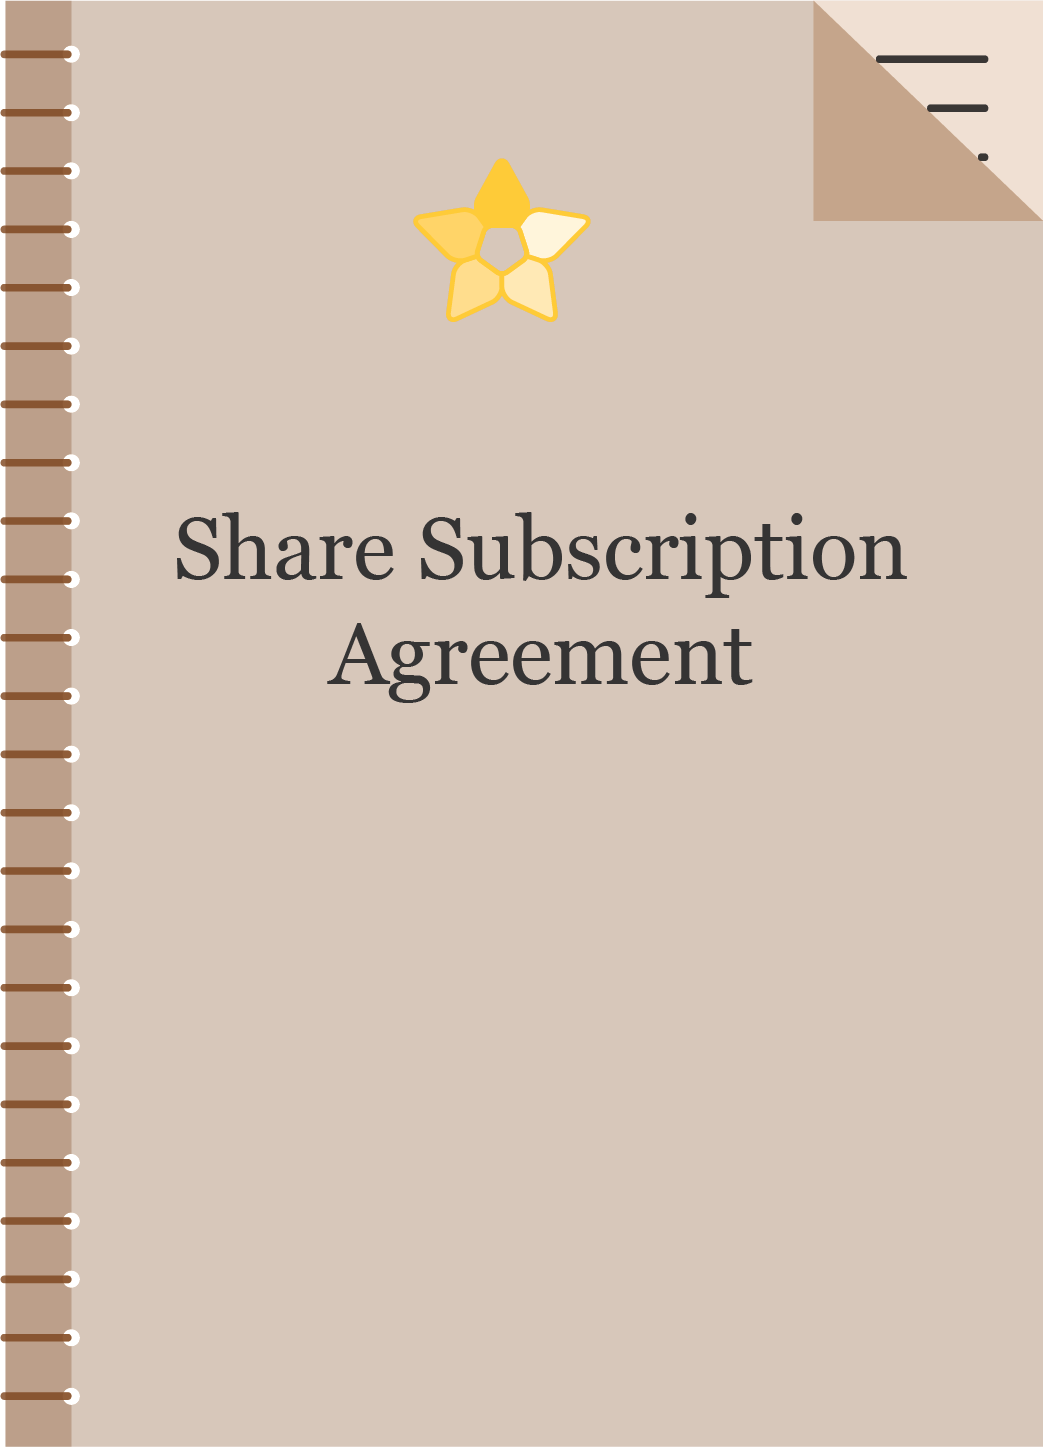 share subscription agreement.png